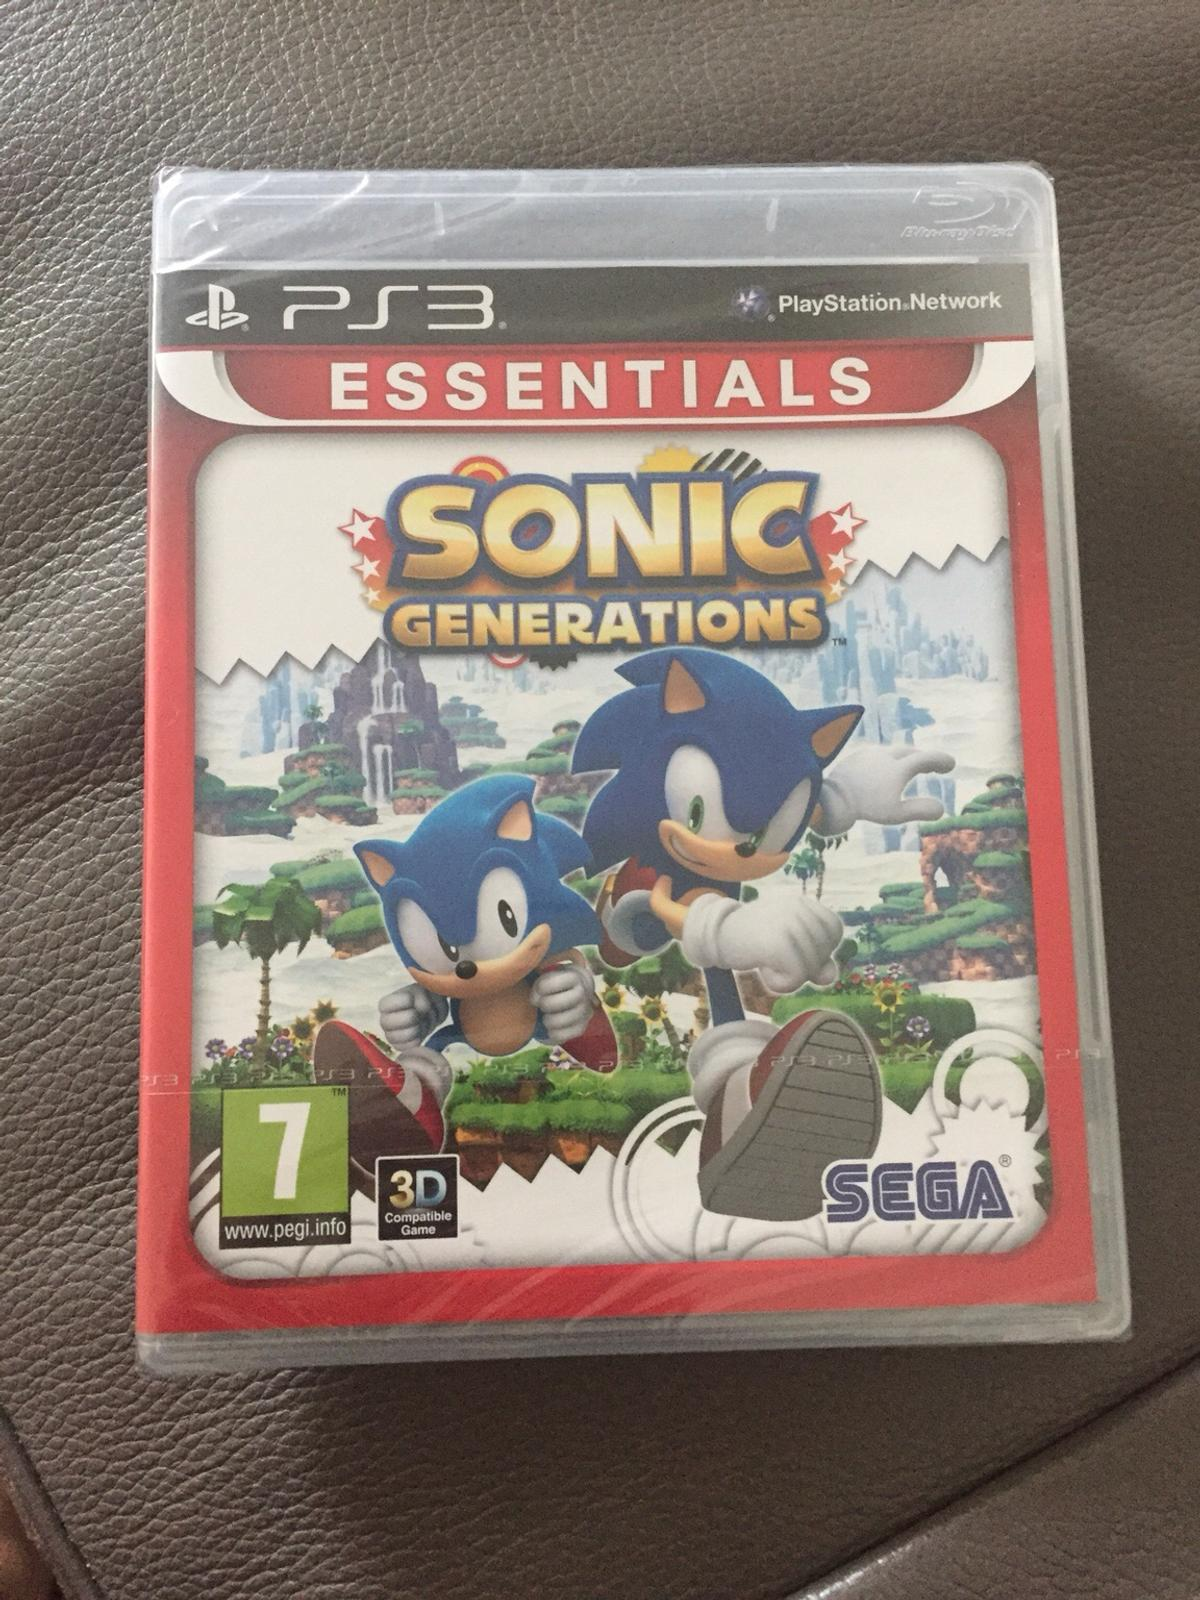 Sonic generations ps3 game (sealed)